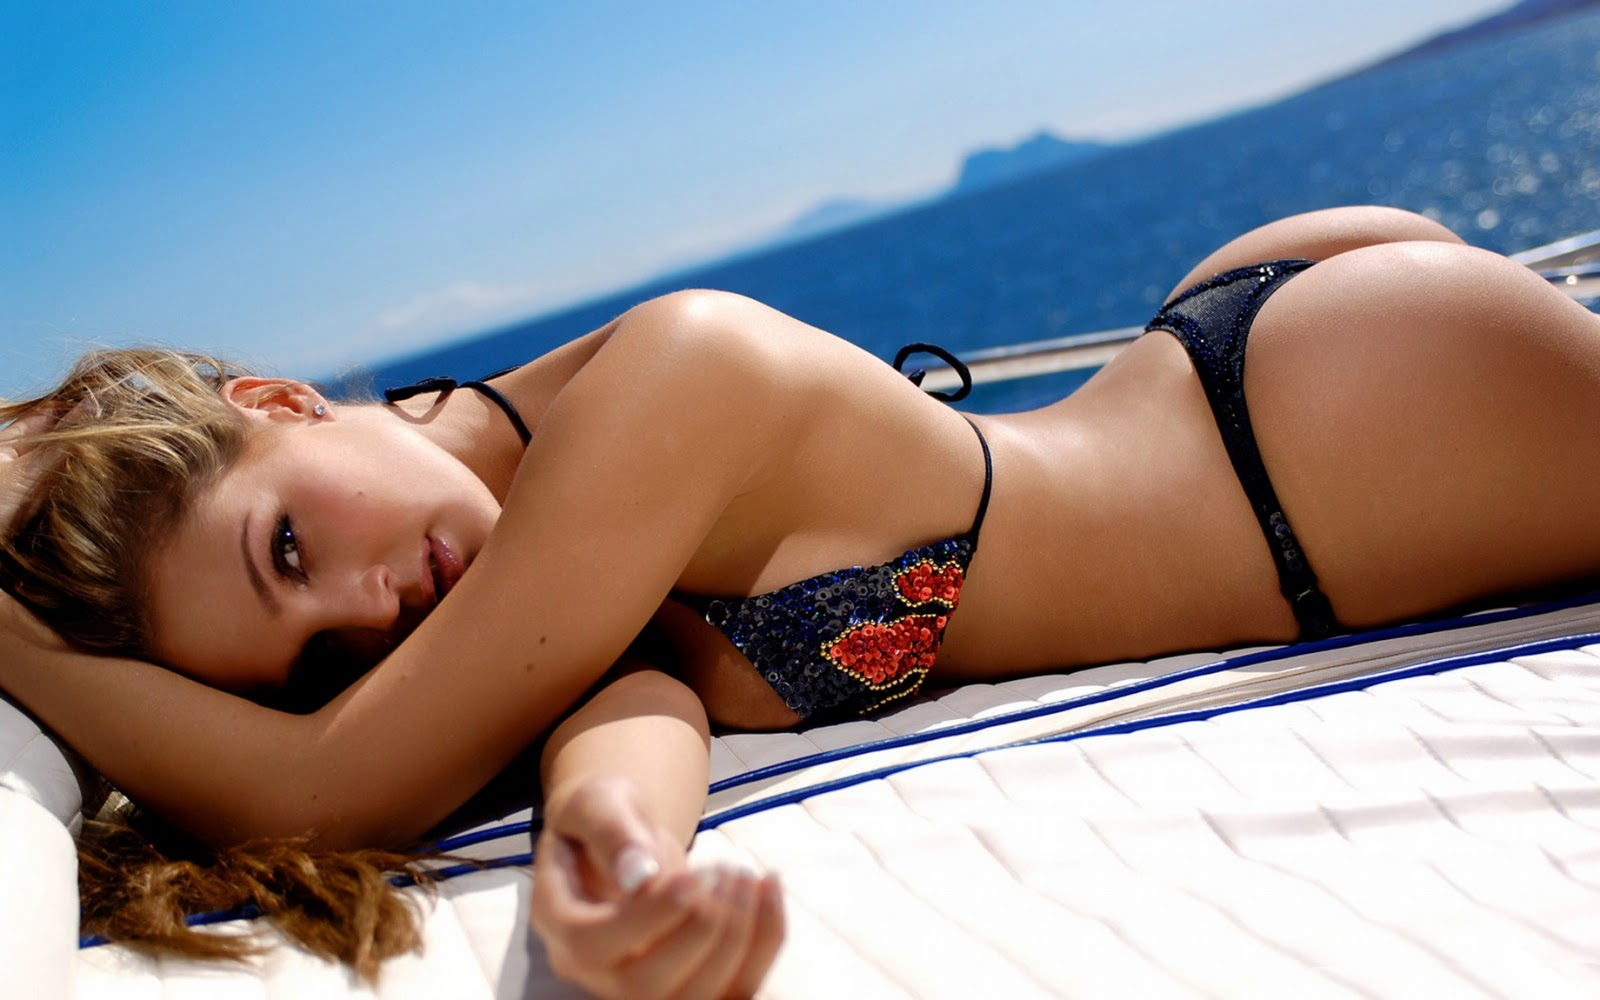 WongSeng HD Wallpapers: Sexy Hot Bikini Ass Desktop Wallpaper